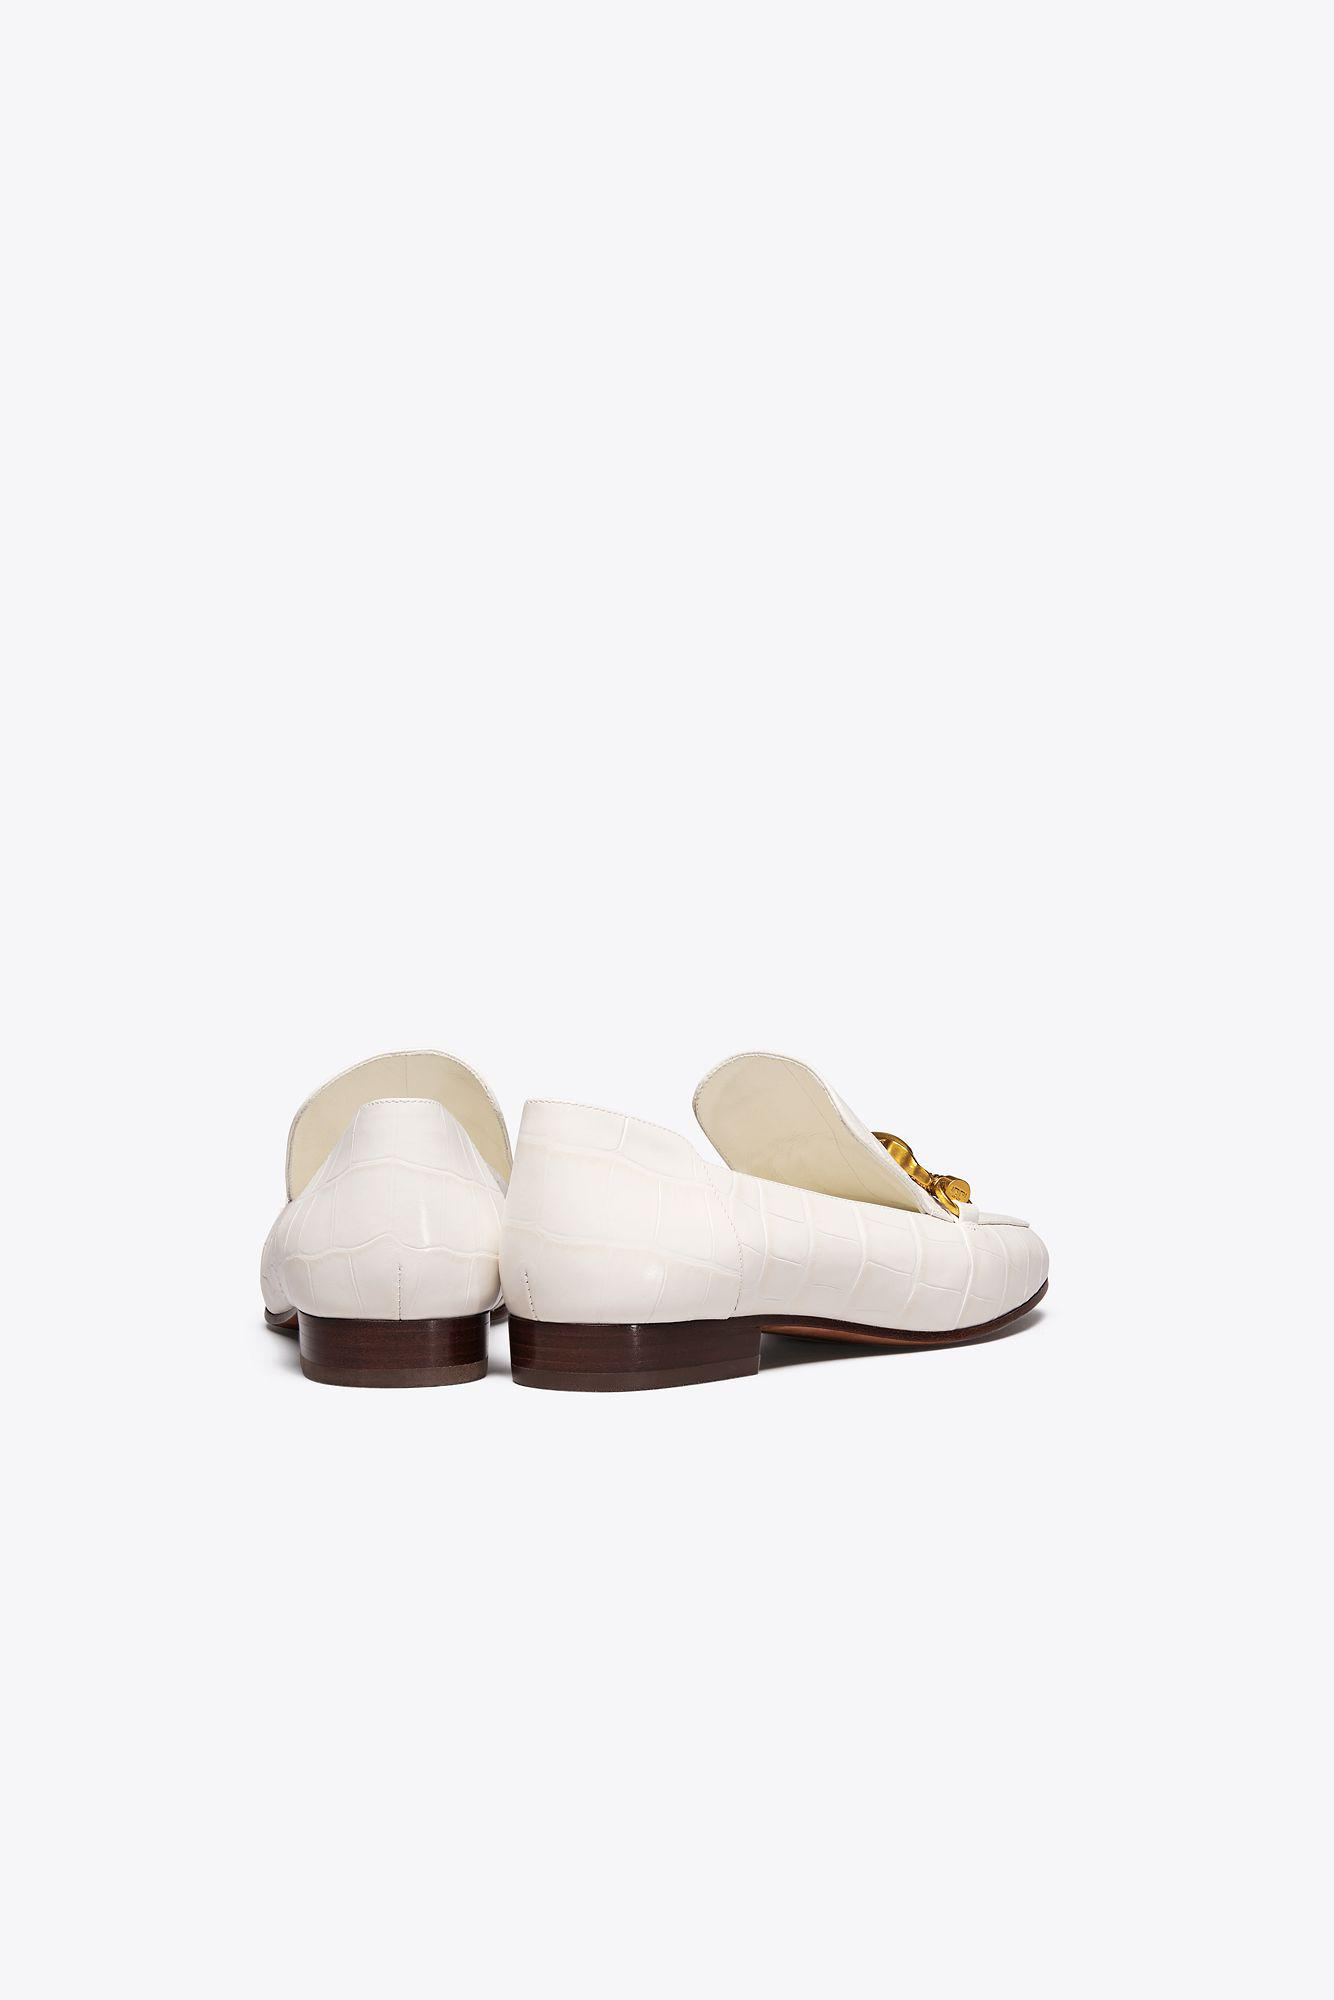 1f19a57f8a6 Lyst - Tory Burch Jessa Horse-hardware Loafer in White